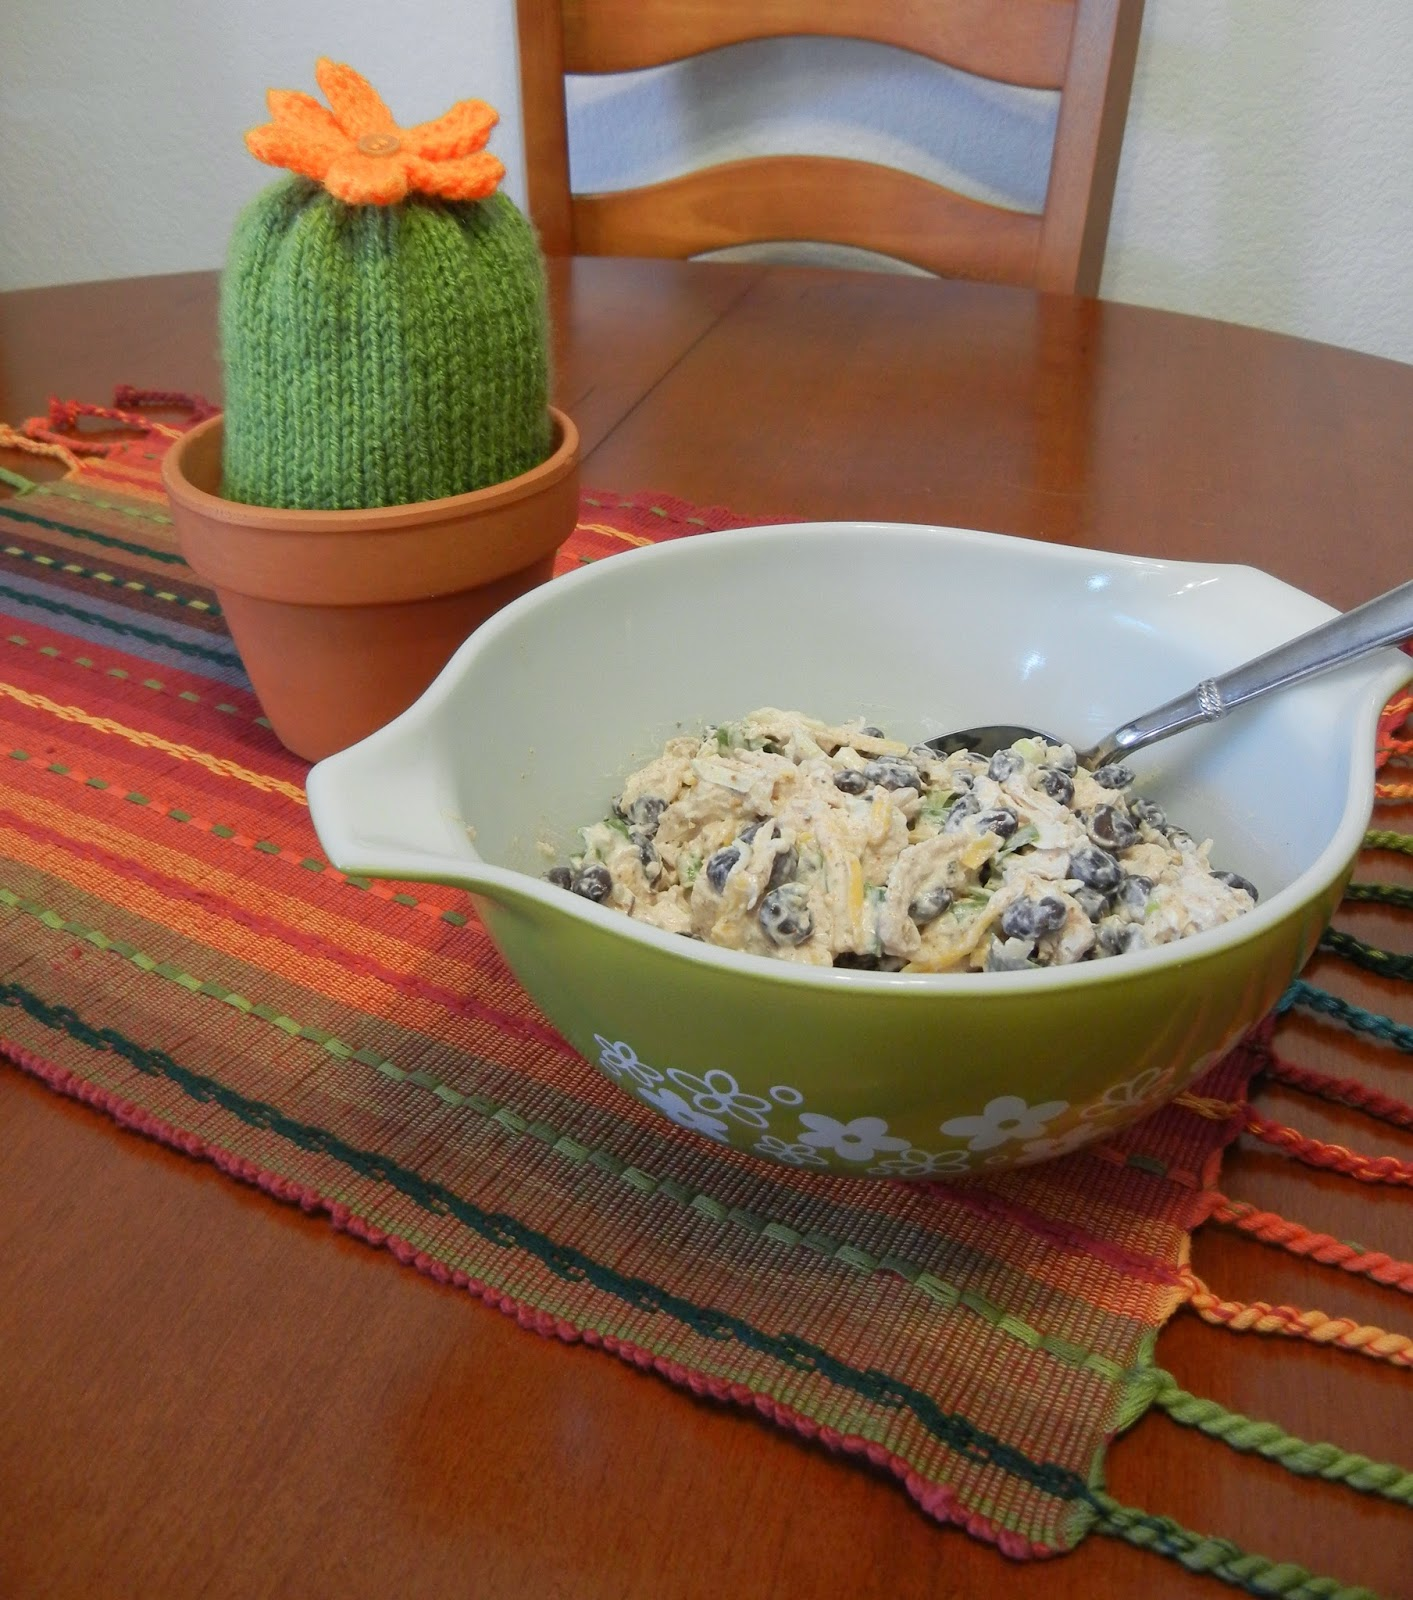 Mexican+Chicken+Black+Bean+Salad+Eggface Weight Loss Recipes Post Weight Loss Surgery Menus: A day in my pouch